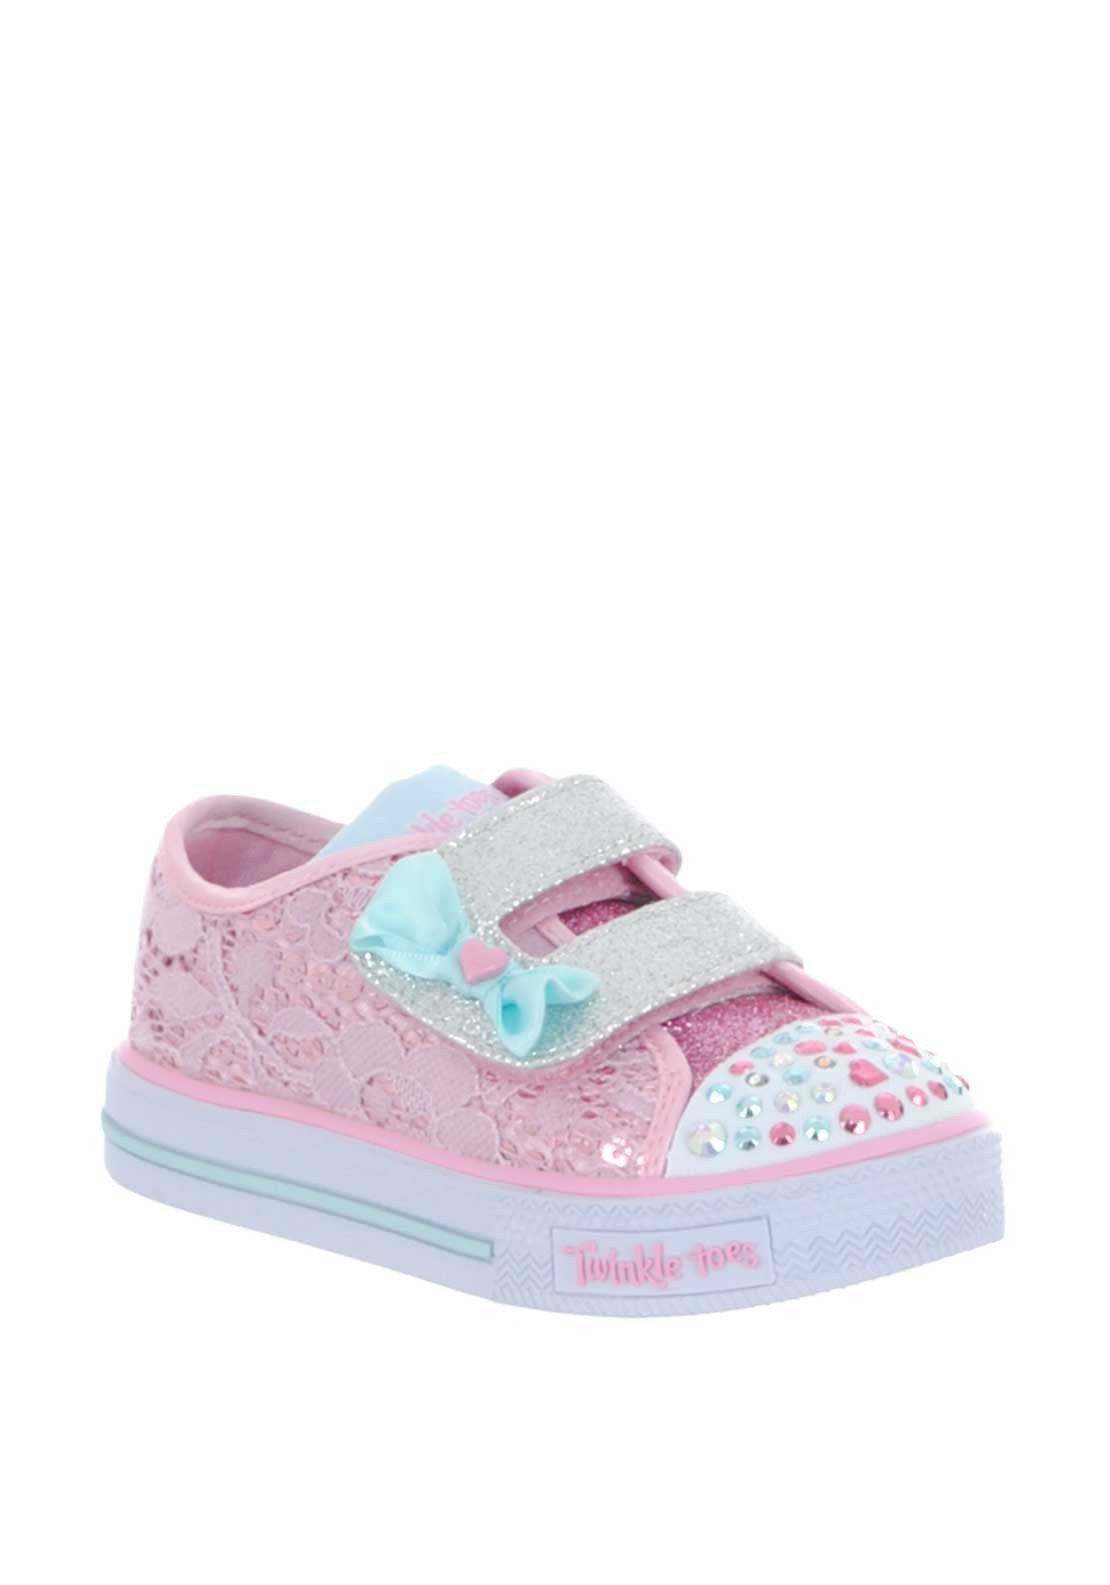 3a8cf4998f78 Skechers Baby Girls Twinkle Toes Trainers